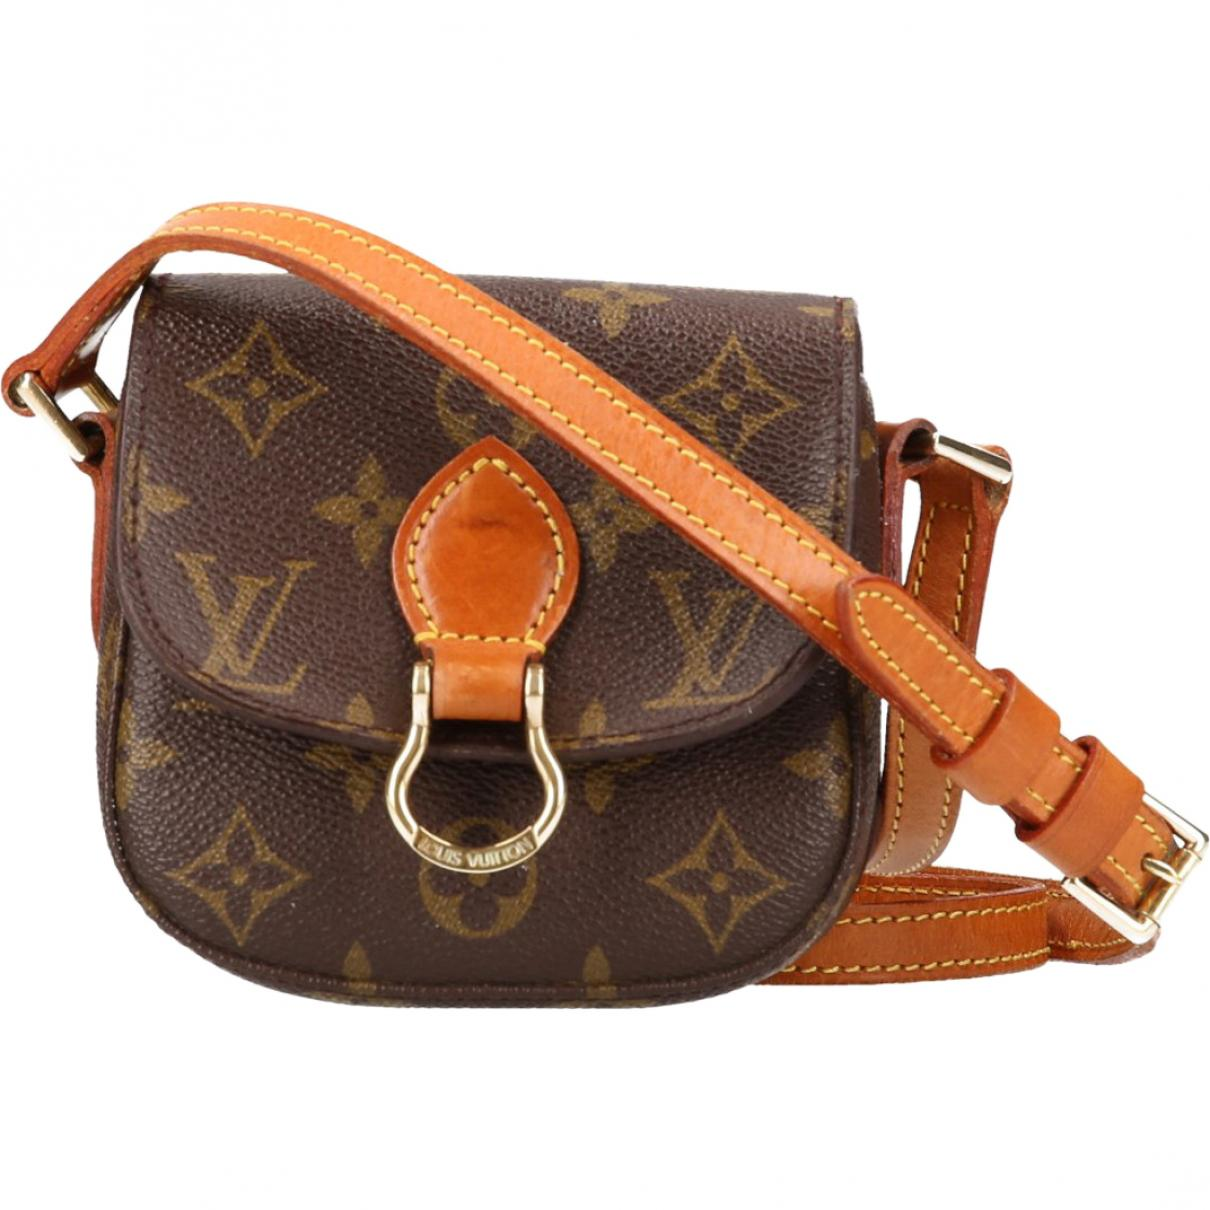 c5bb38a7ac157 Louis Vuitton Saint Cloud Cloth Bag in Brown - Lyst